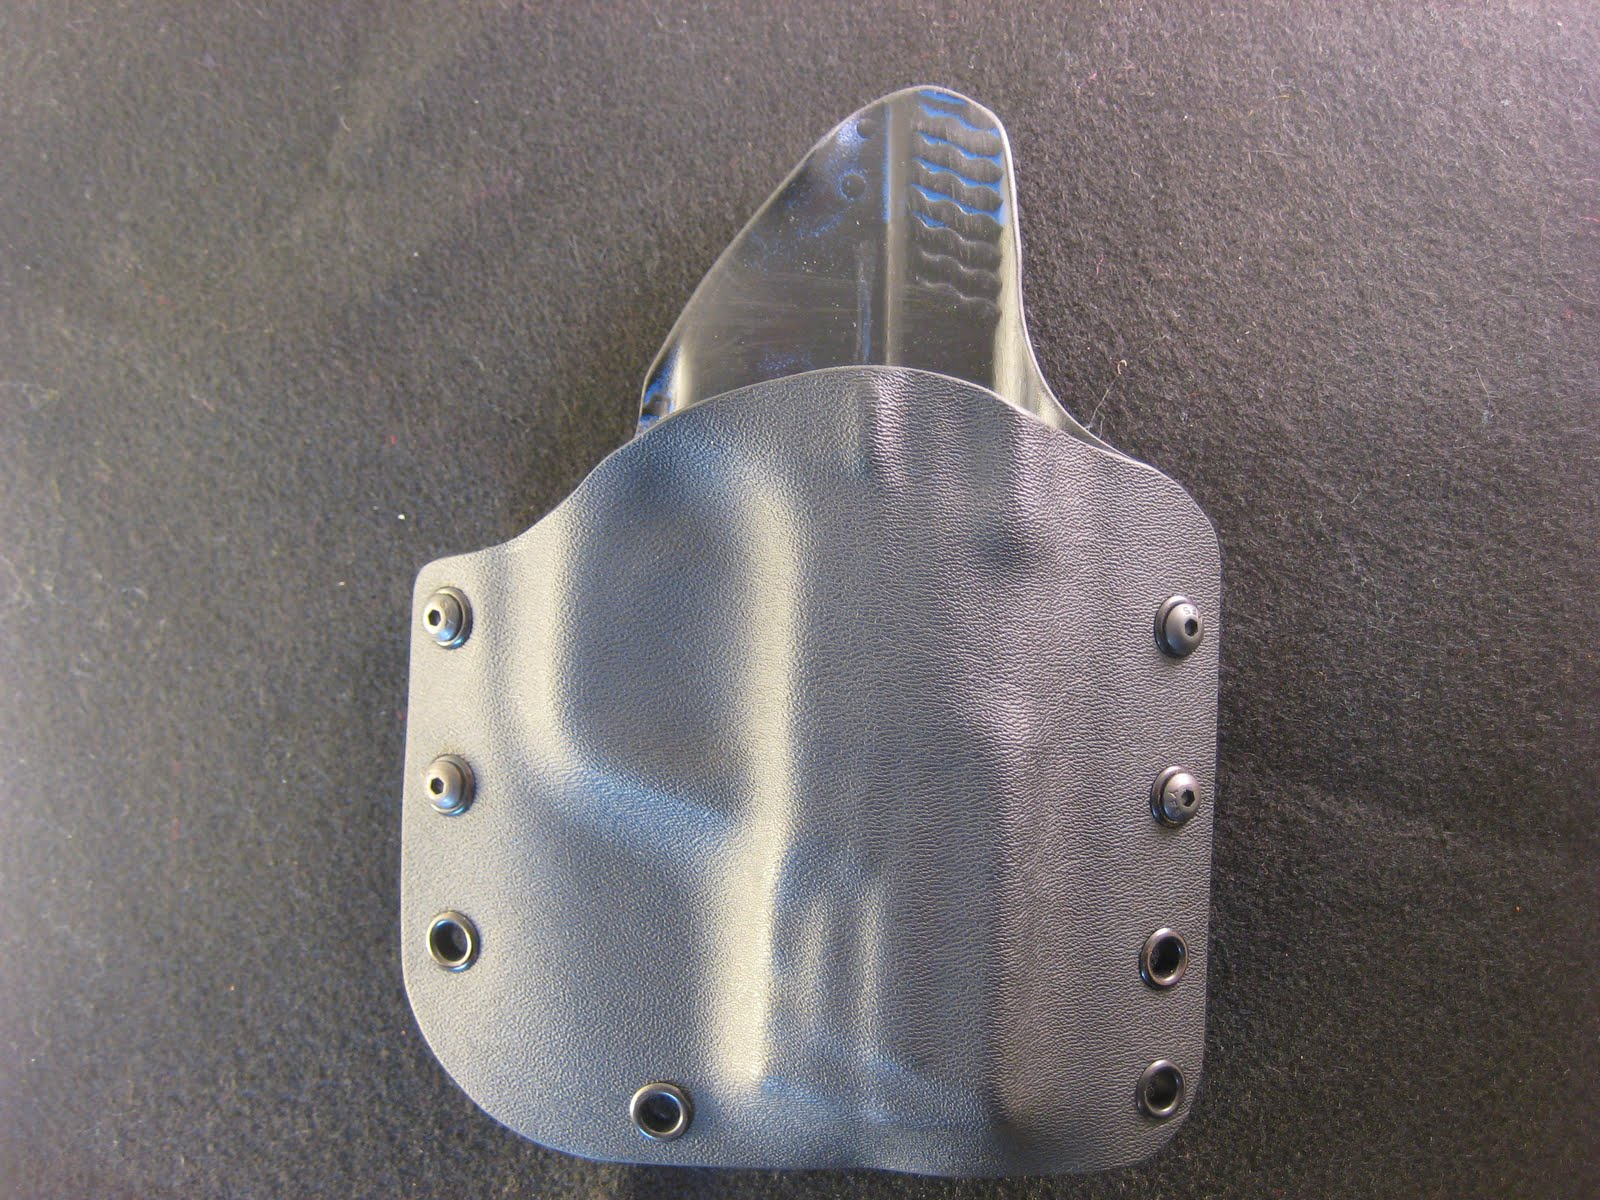 RKBA Holsters: Leather & Kydex Holsters: July 2011